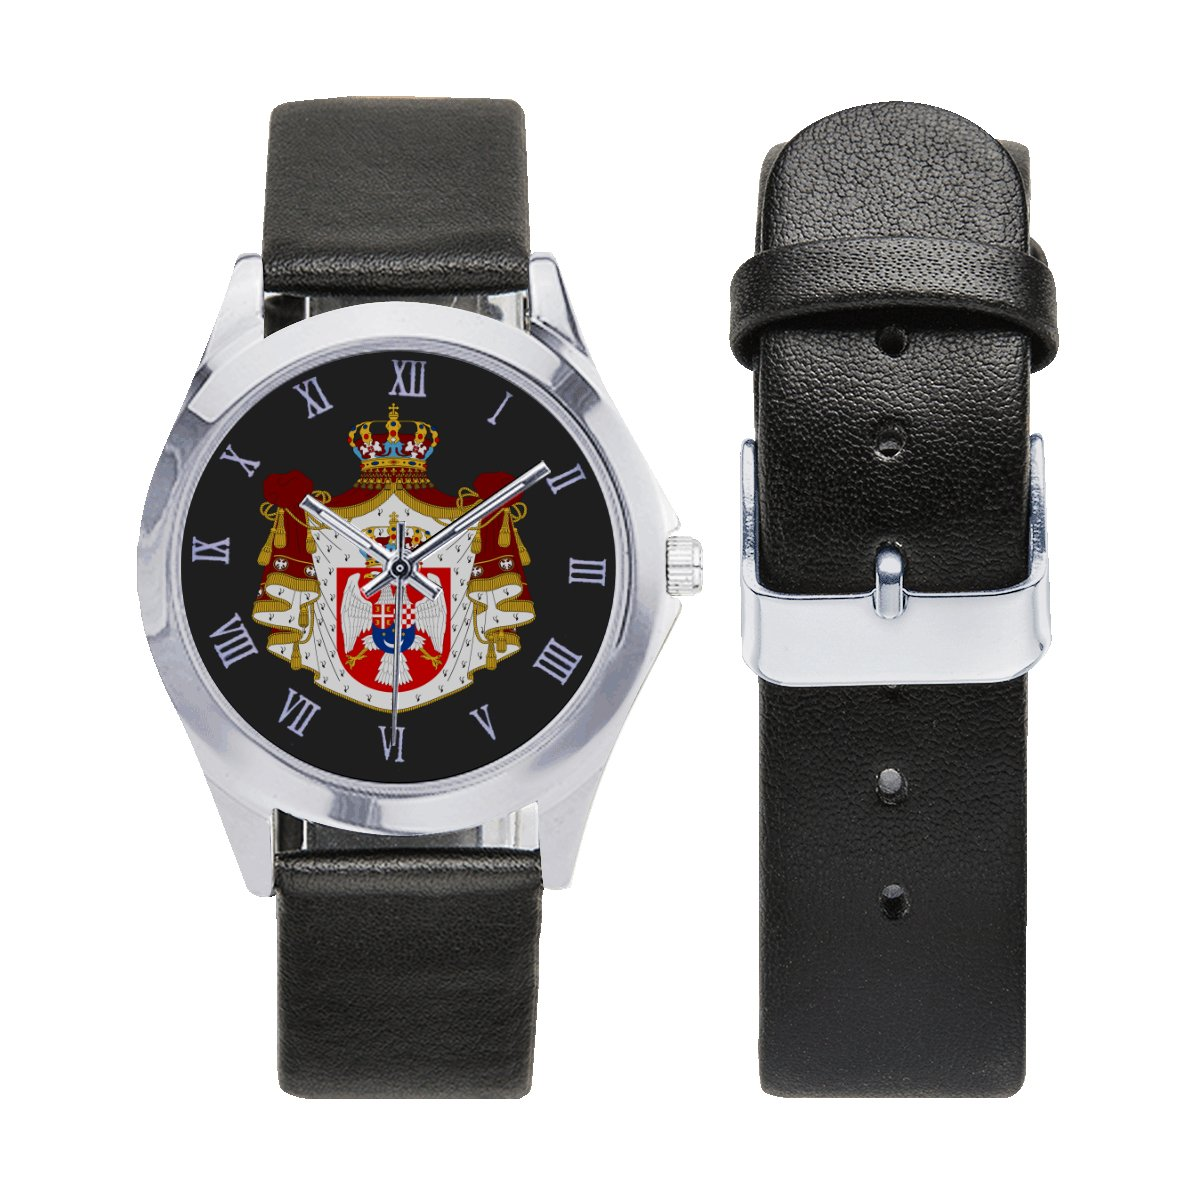 Royal Yugoslav Special Forces Army Leather Strap Watch Wrist Watches a perfect accessory